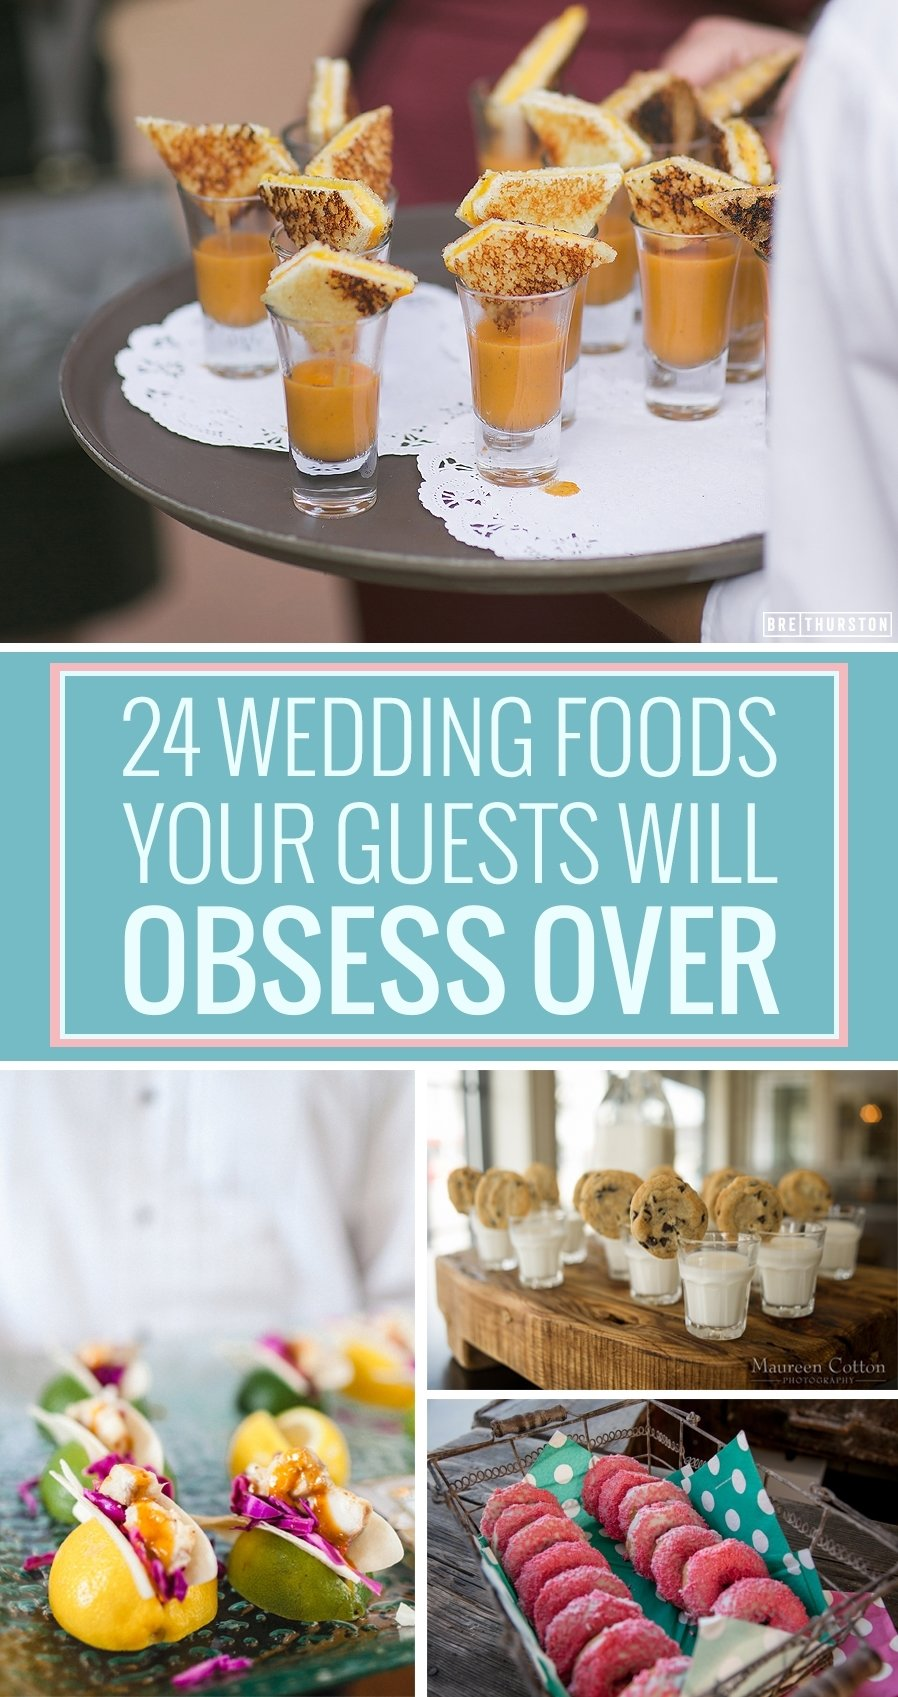 10 Nice Food Ideas For A Wedding 24 unconventional wedding foods your guests will obsess over huffpost 2021